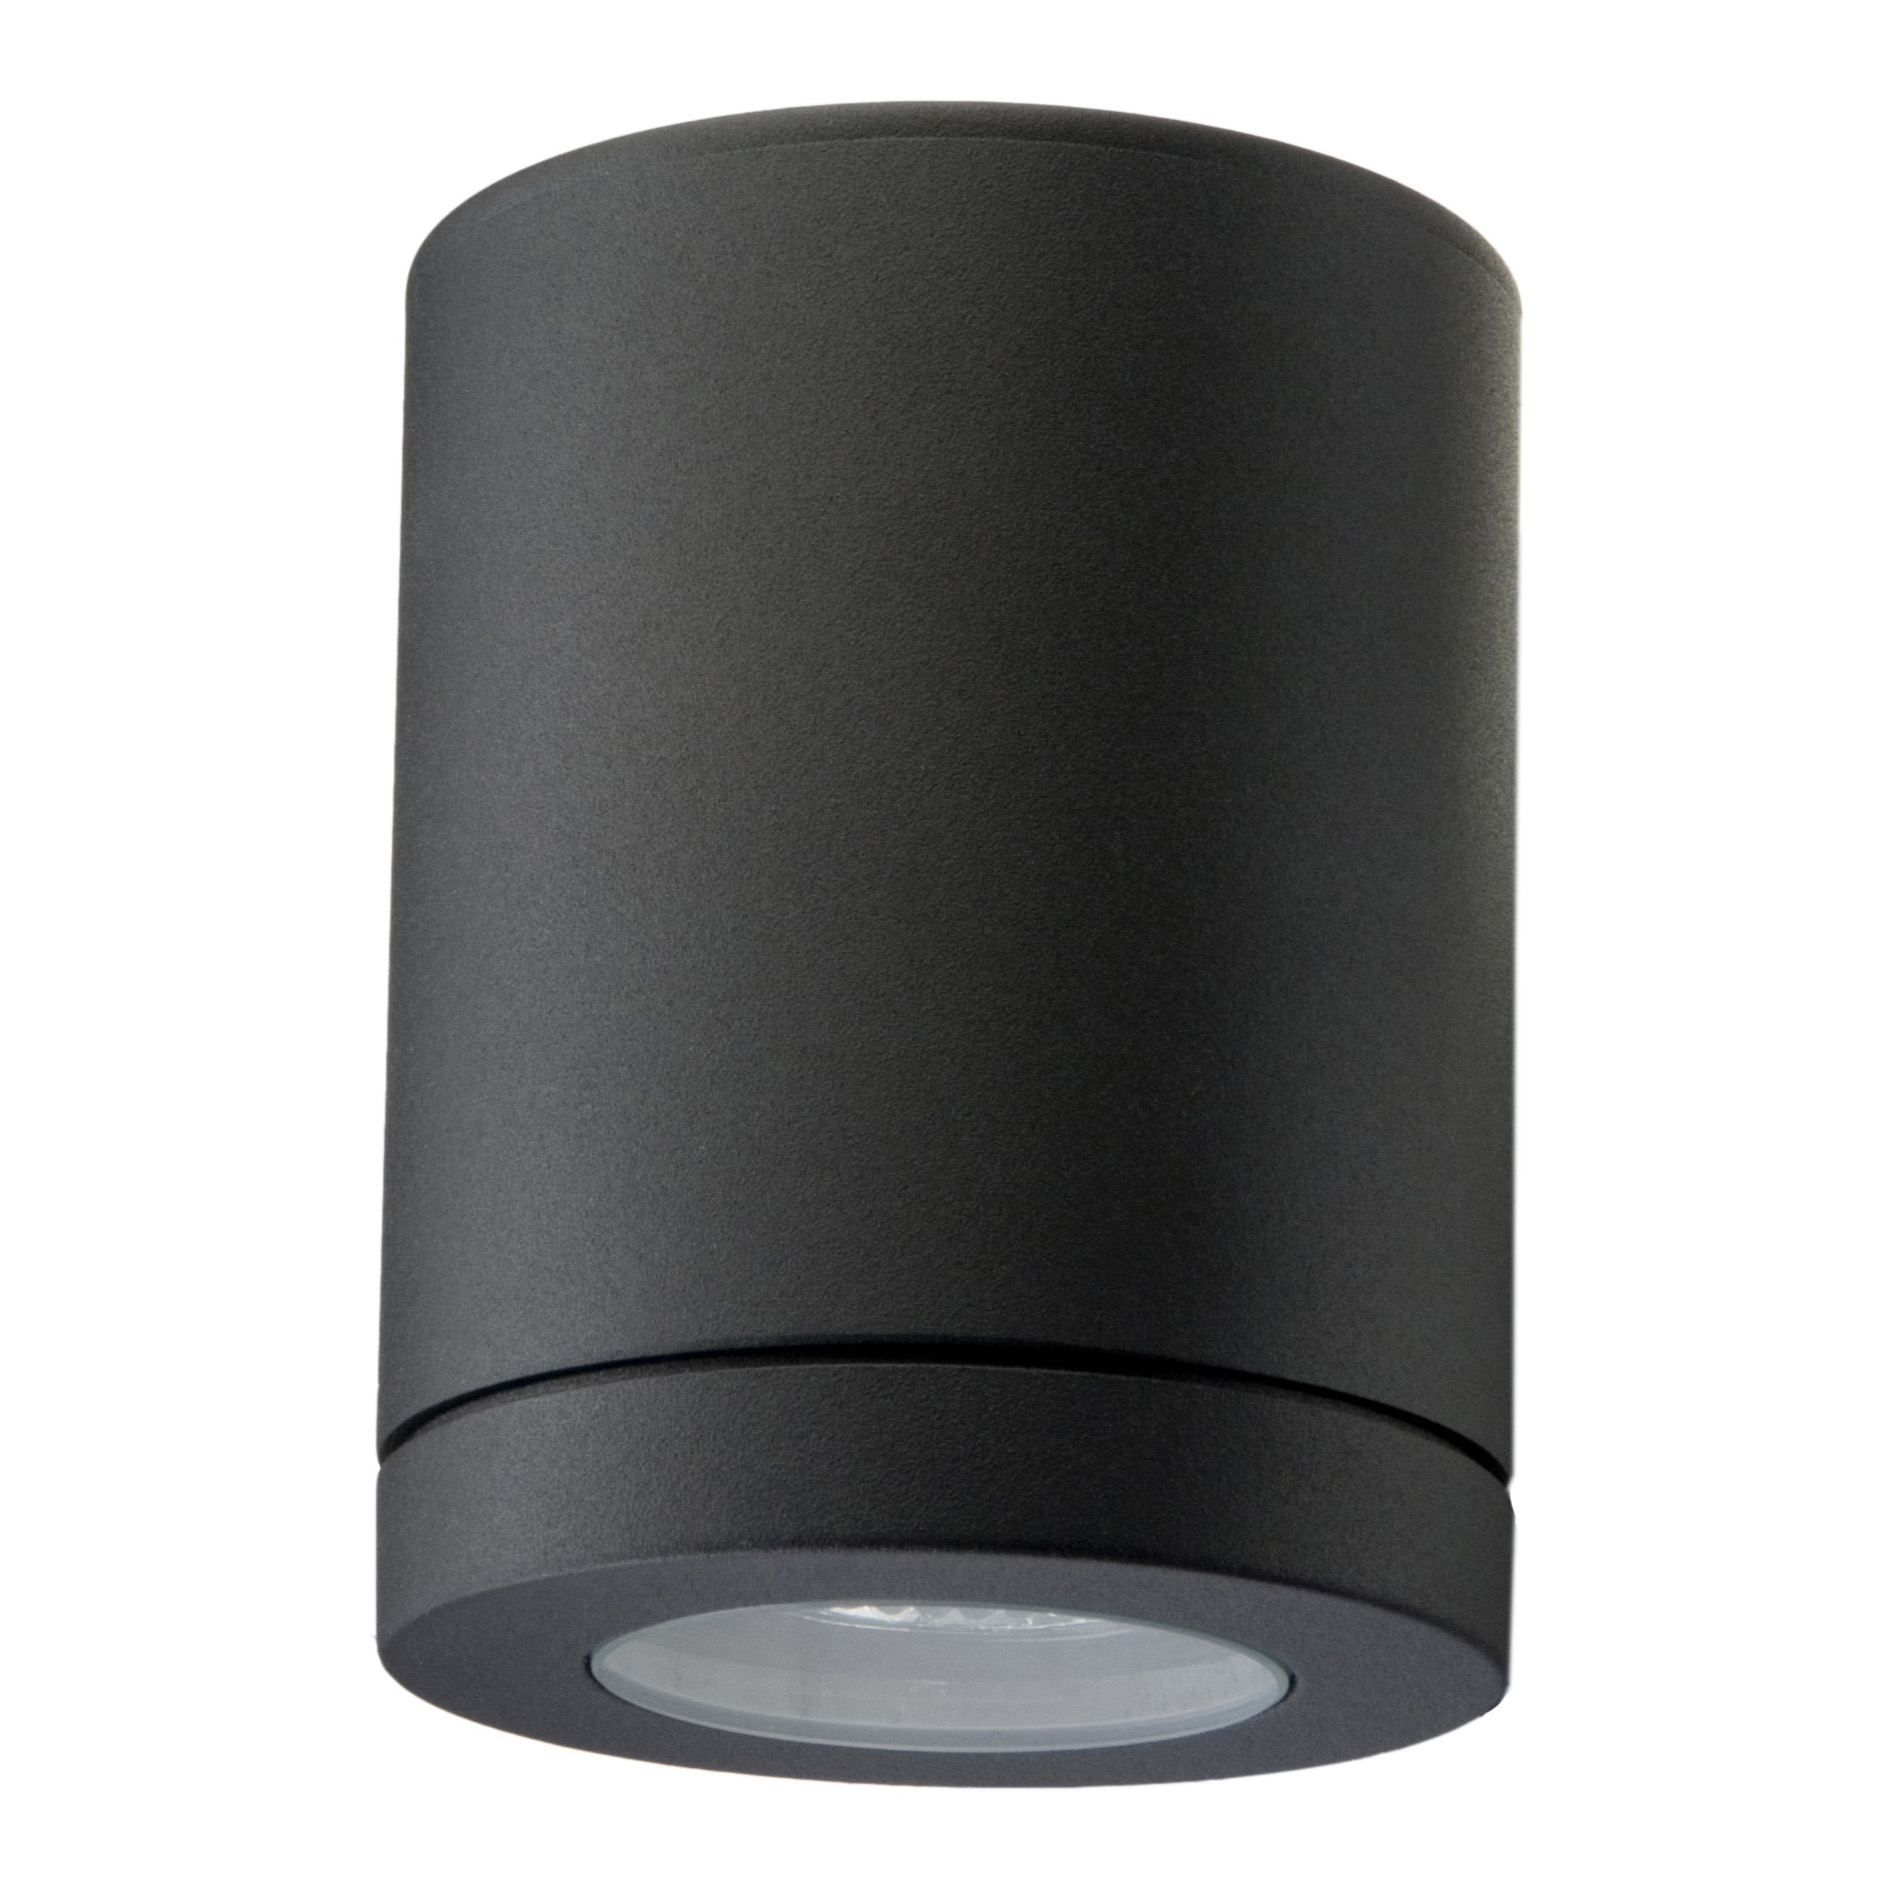 SG lighting LED Metro 35W zwart 614695 plafond